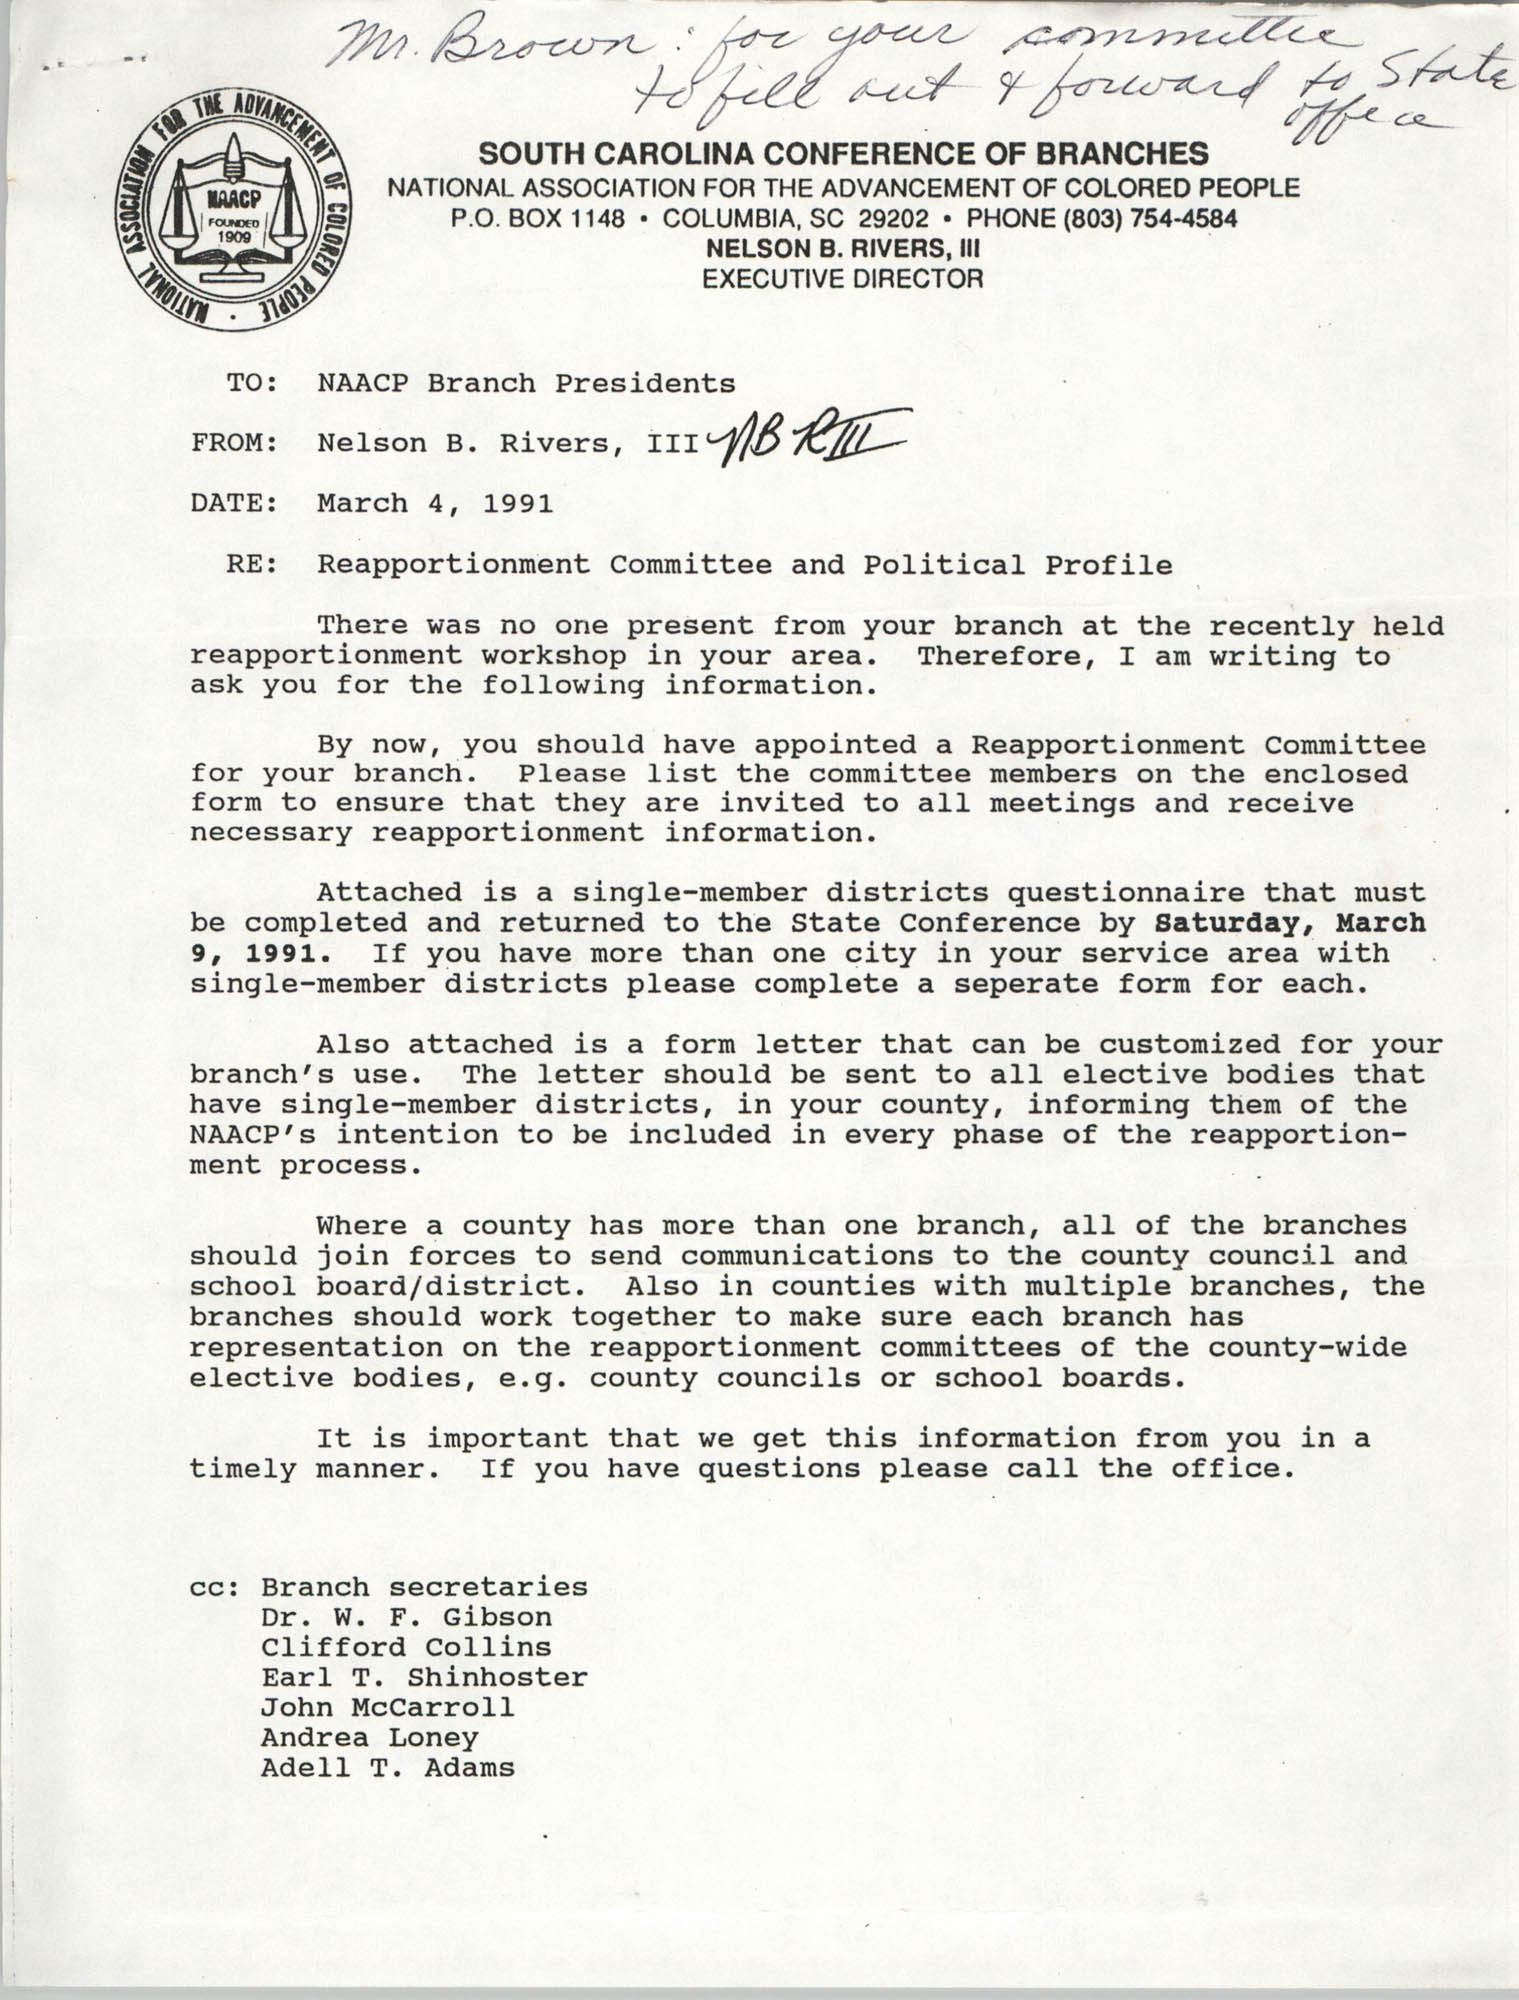 South Carolina Conference of Branches of the NAACP Memorandum, March 4, 1991